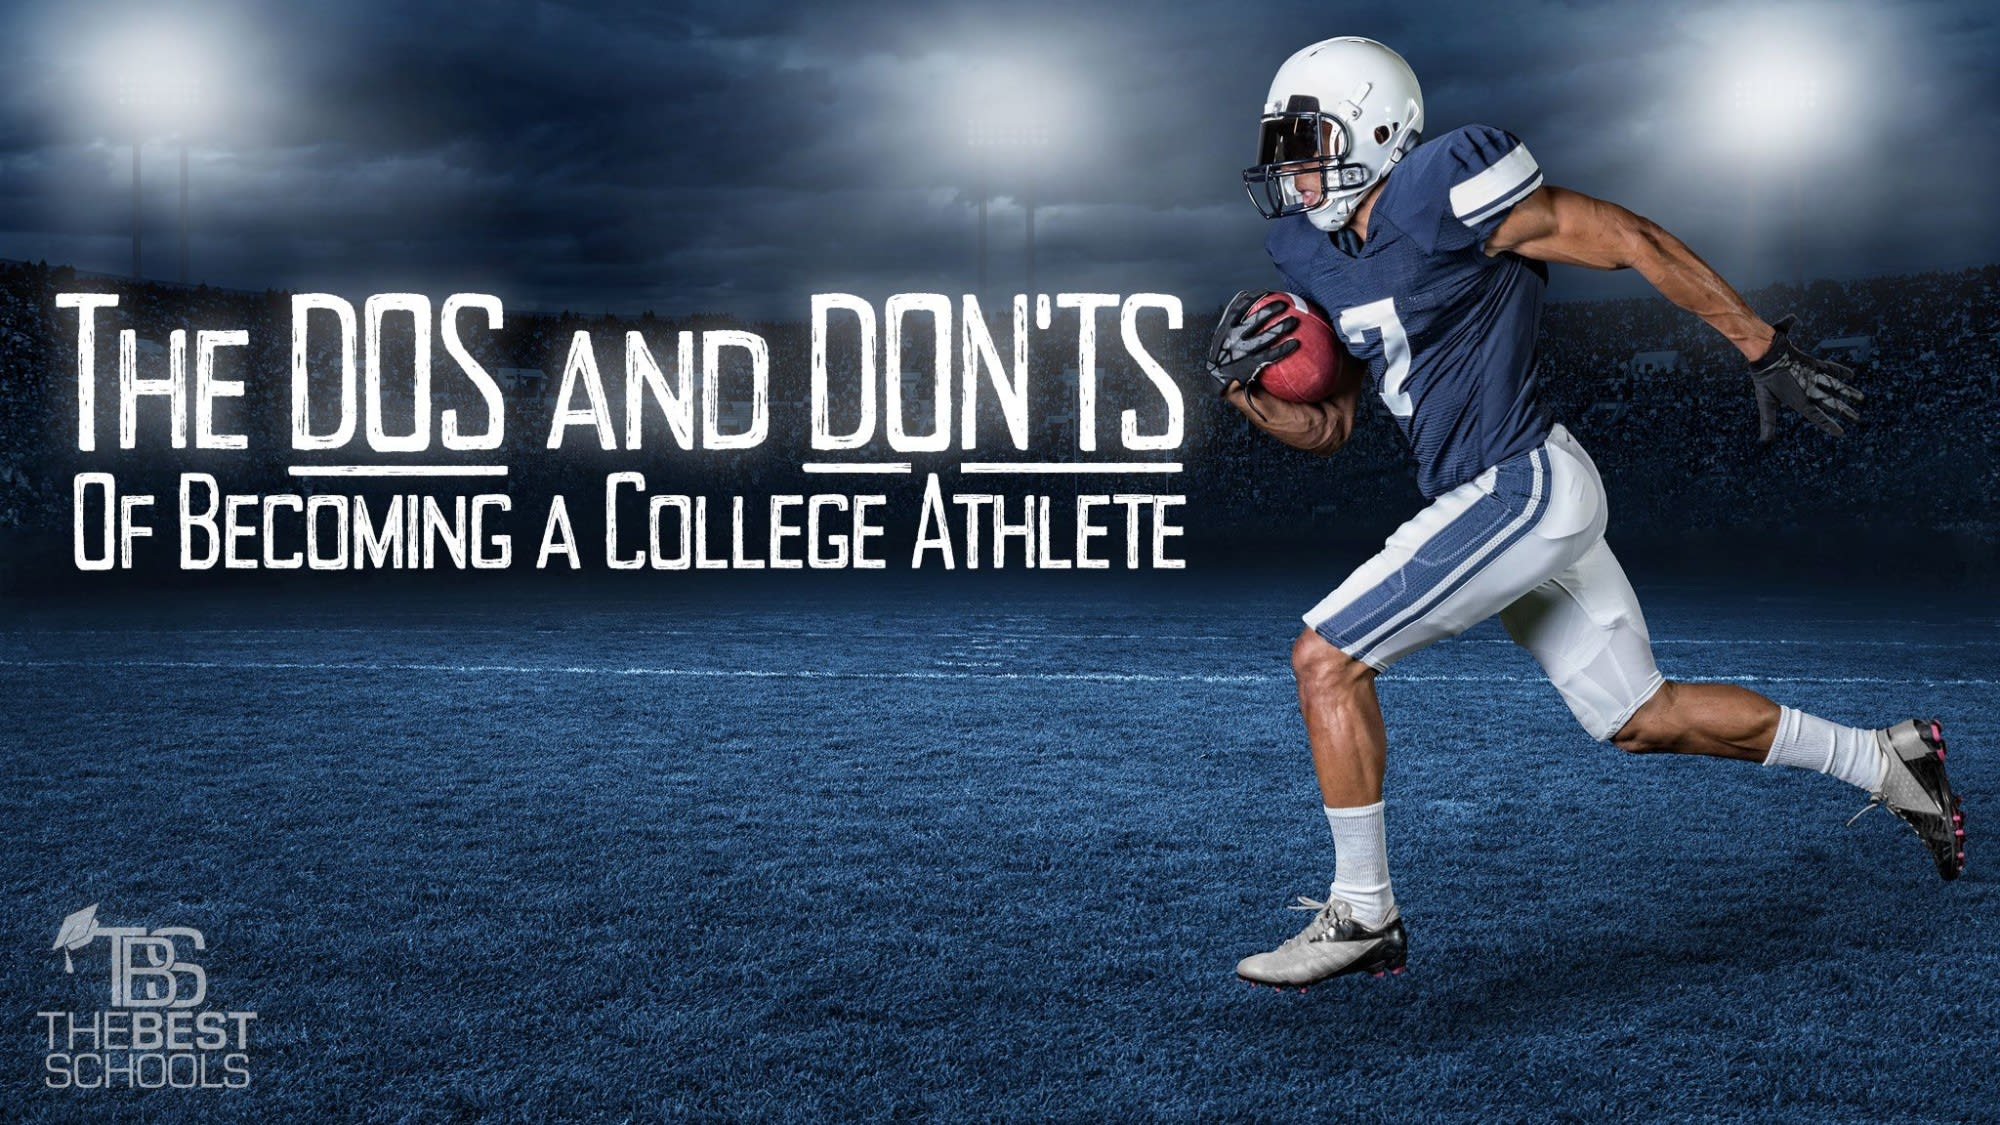 The Dos & Don'ts of Becoming a College Athlete | The Quad